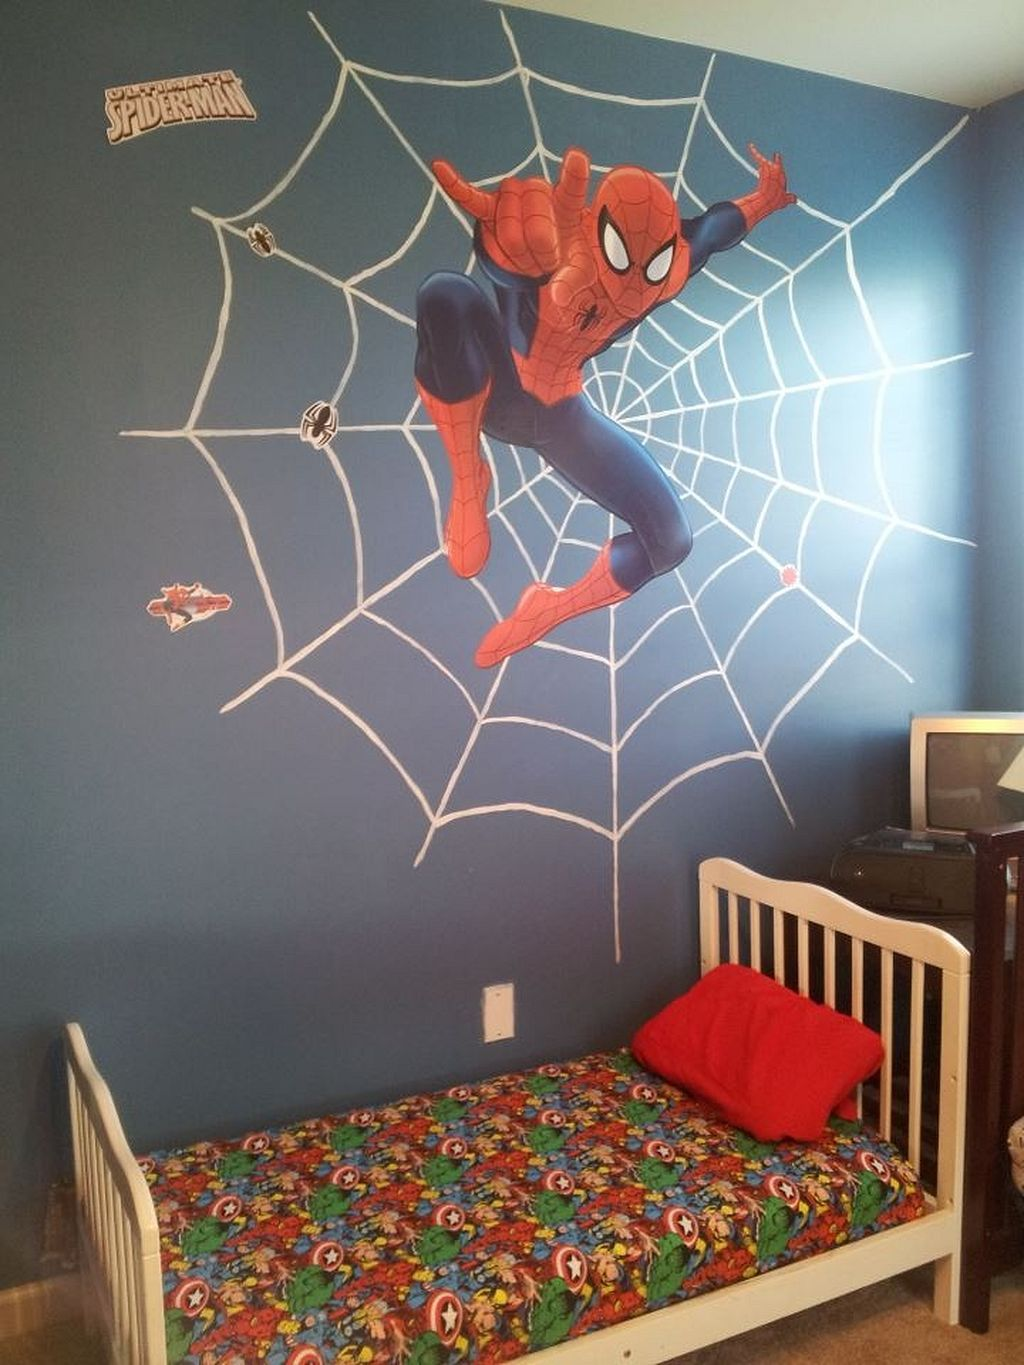 30 DIY Spiderman Themed Bedroom Ideas for Your Little Superheroes images